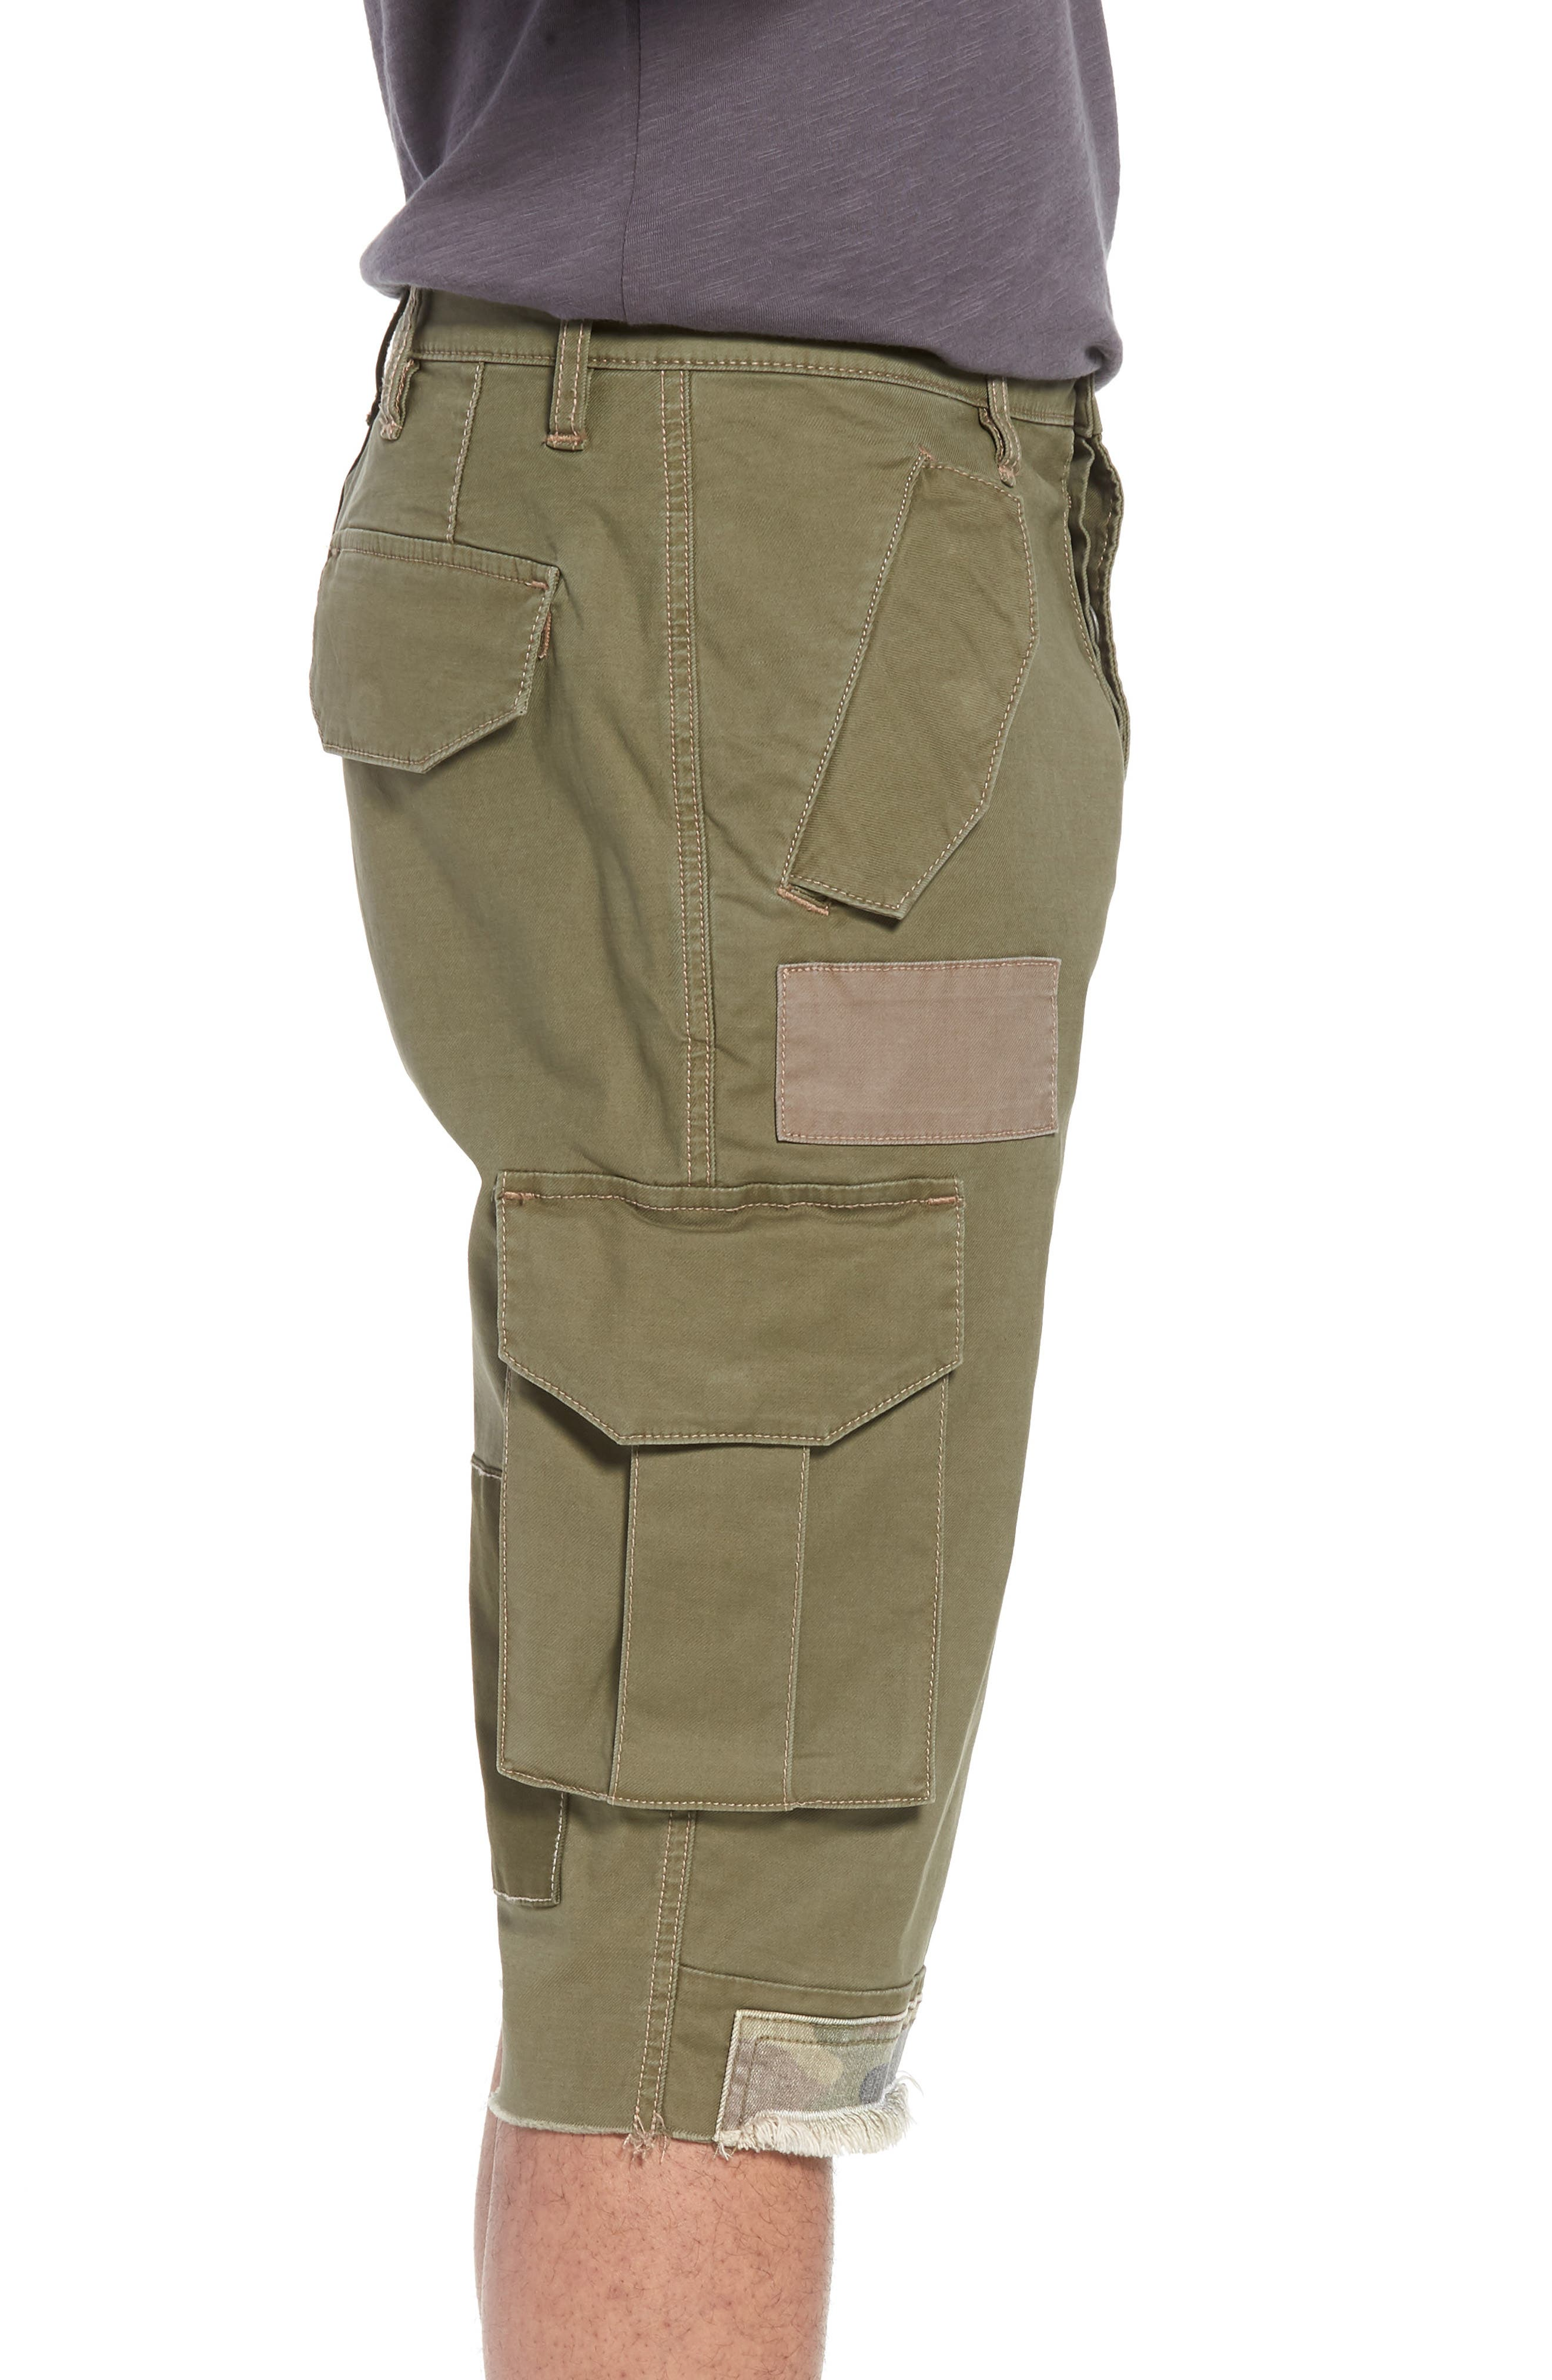 Slim Fit Cargo Shorts,                             Alternate thumbnail 3, color,                             359